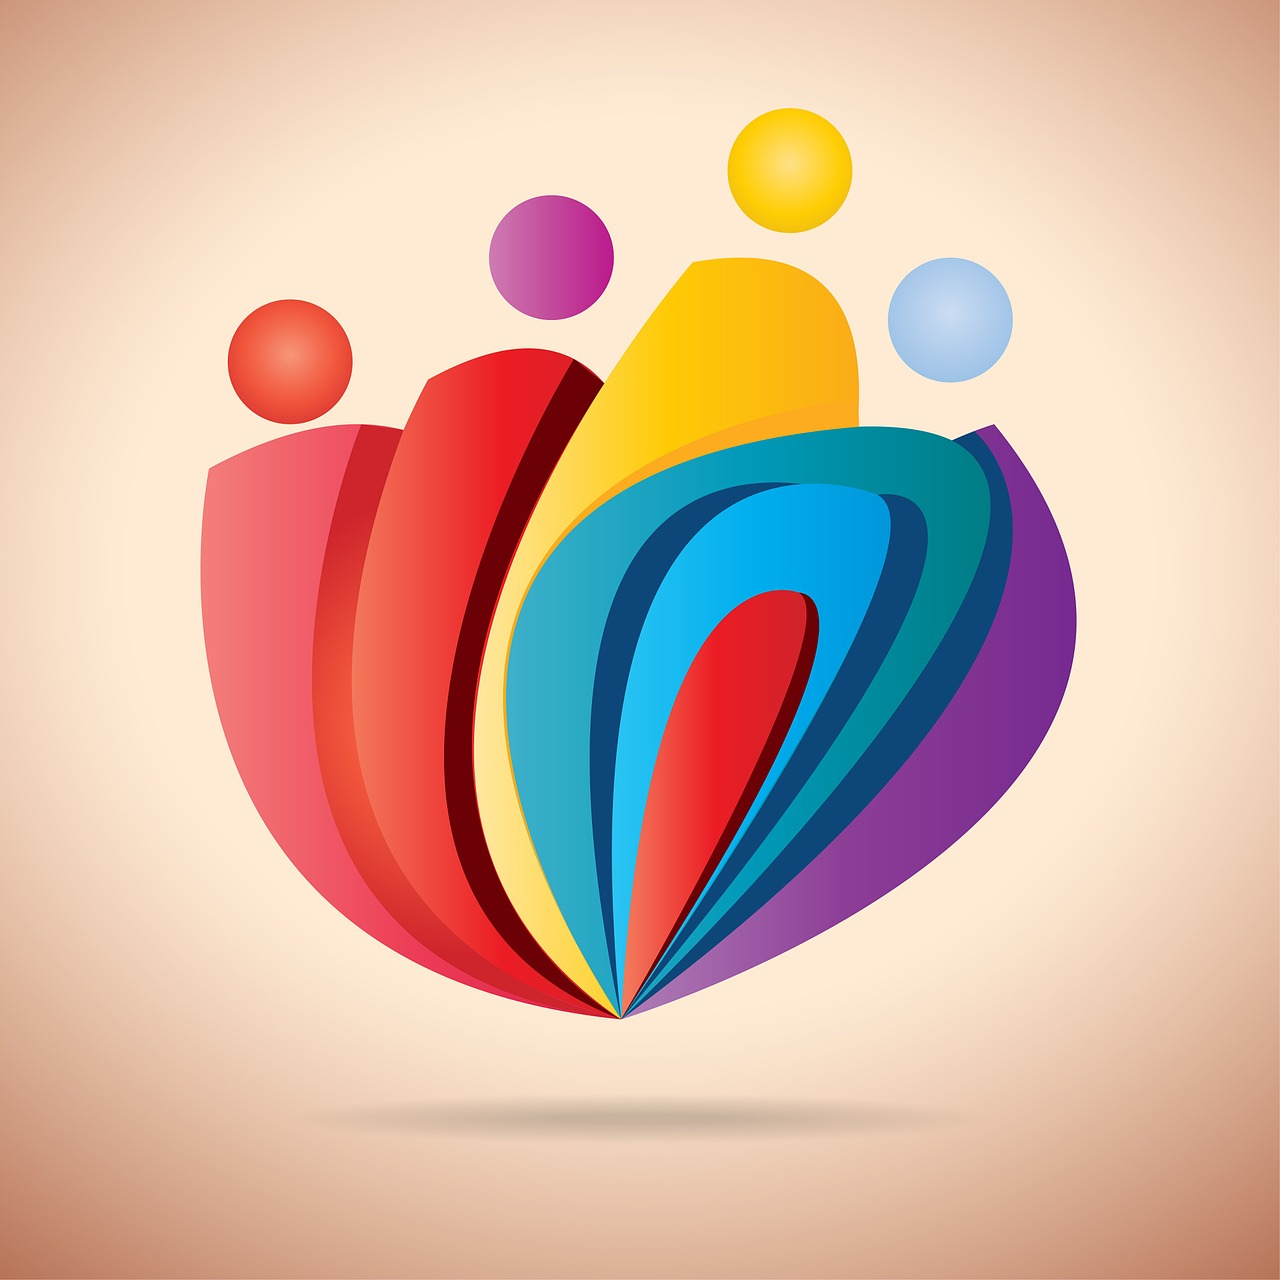 Free and Cheap Company Logo Creator Portals which South Africans can use